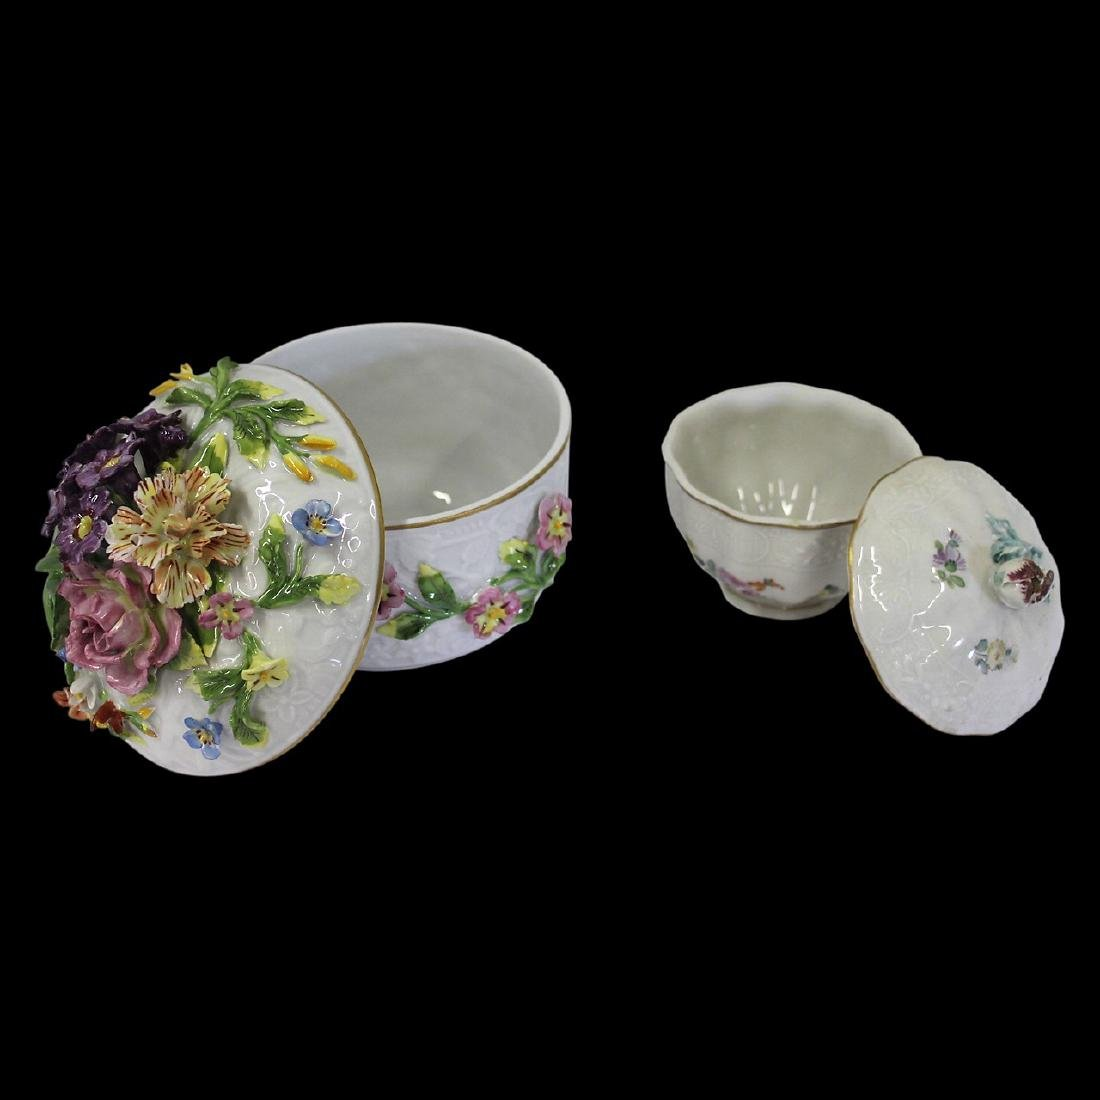 Pair of Dresden Porcelain Bowls with Lids - 3